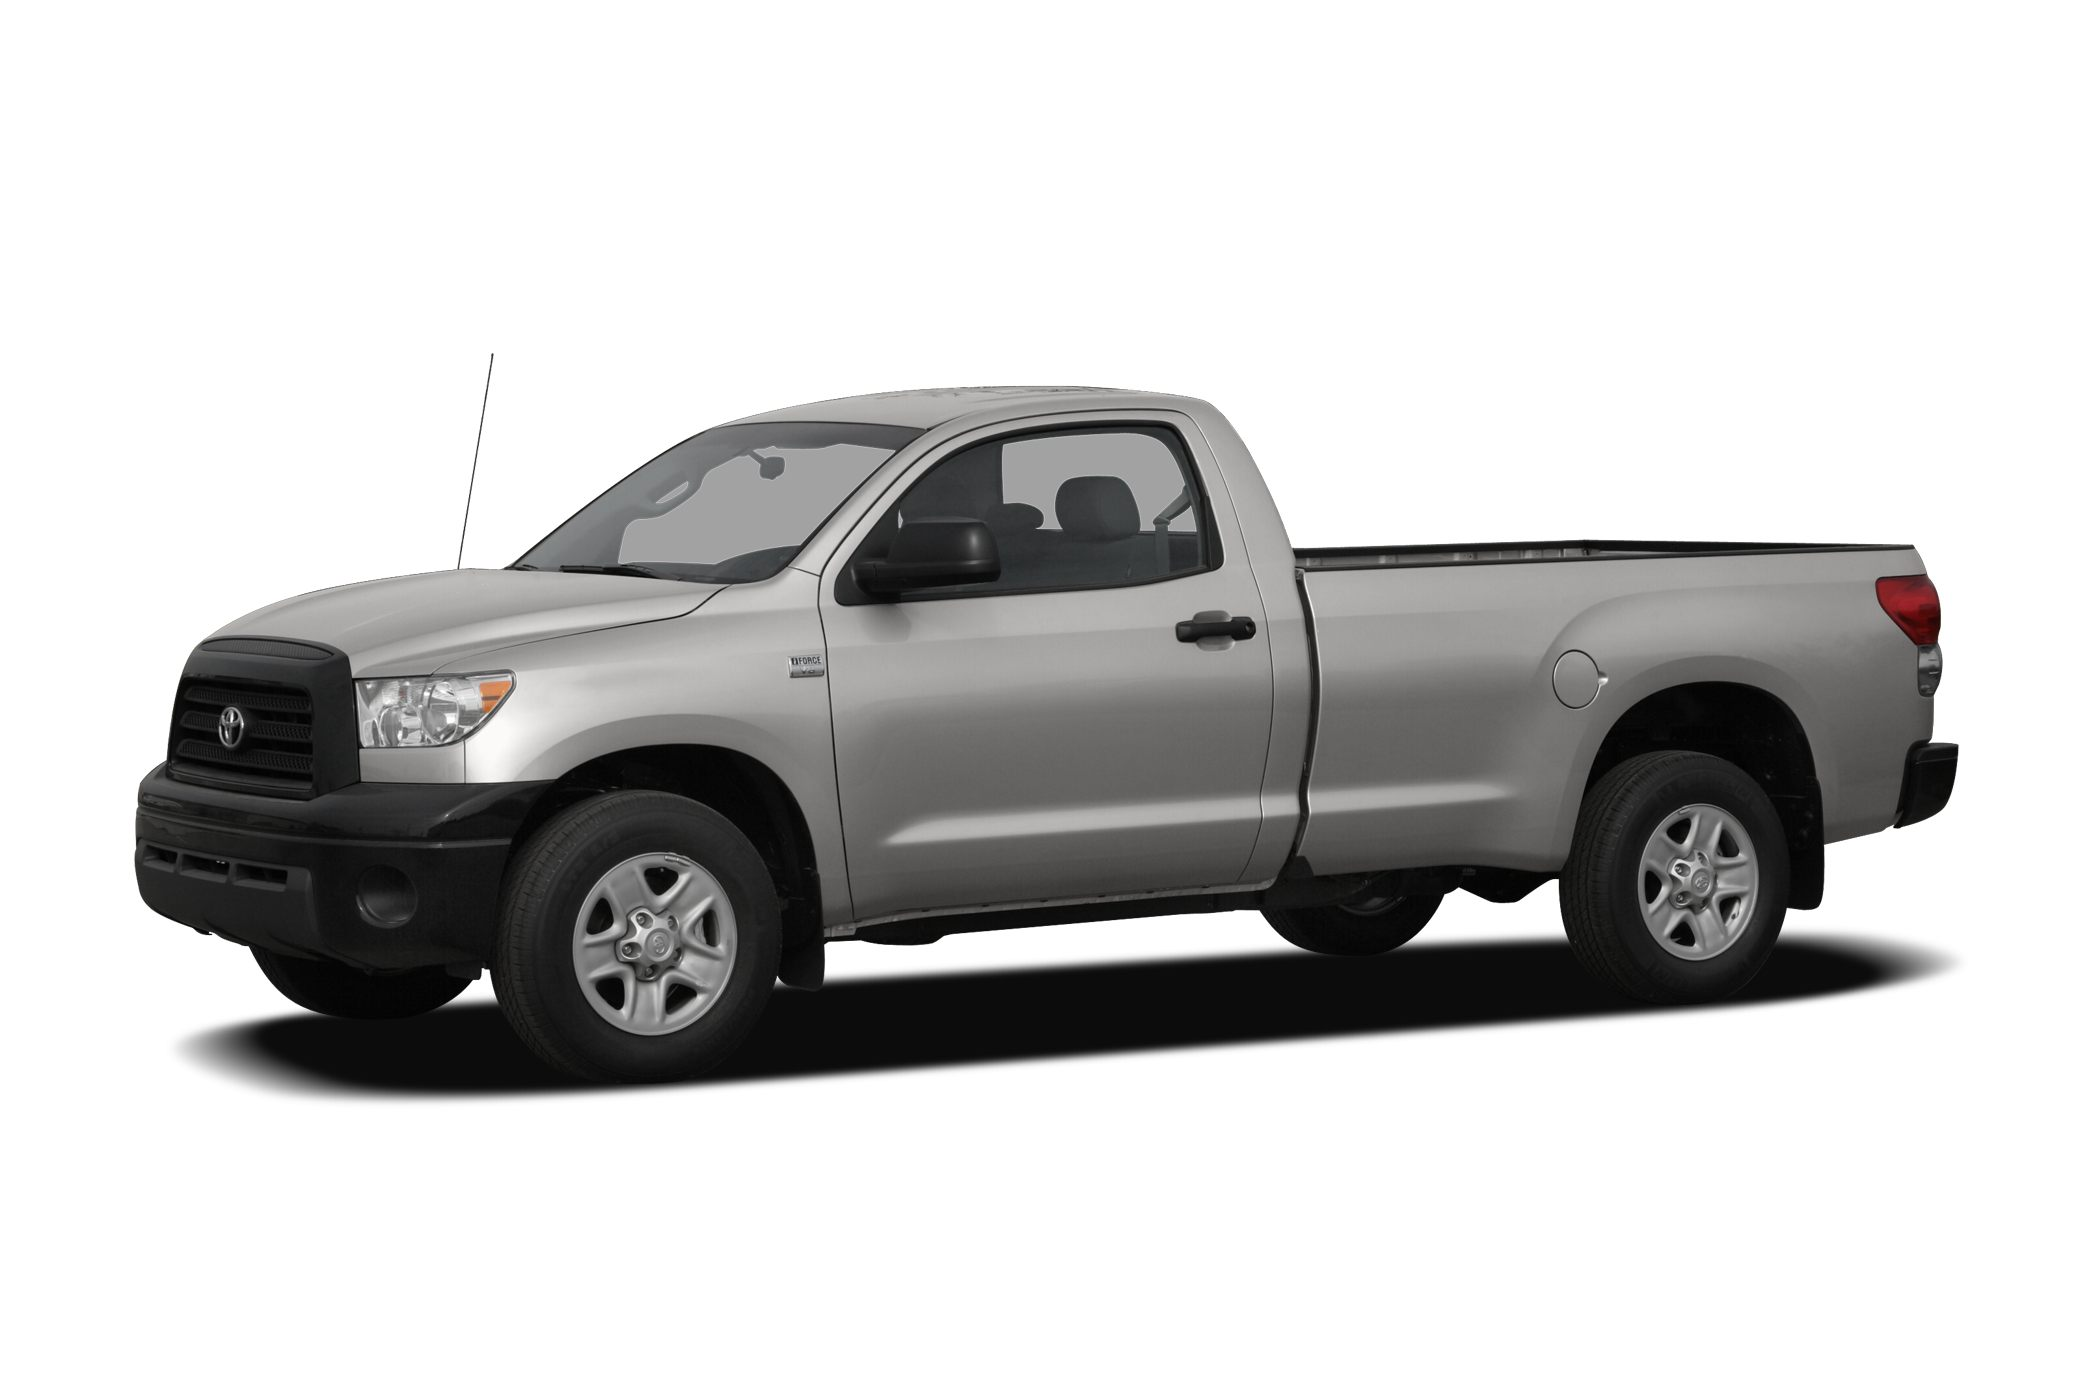 2007 Toyota Tundra Base Nice truck Get ready to ENJOY The Tundra happily reports for duty The q